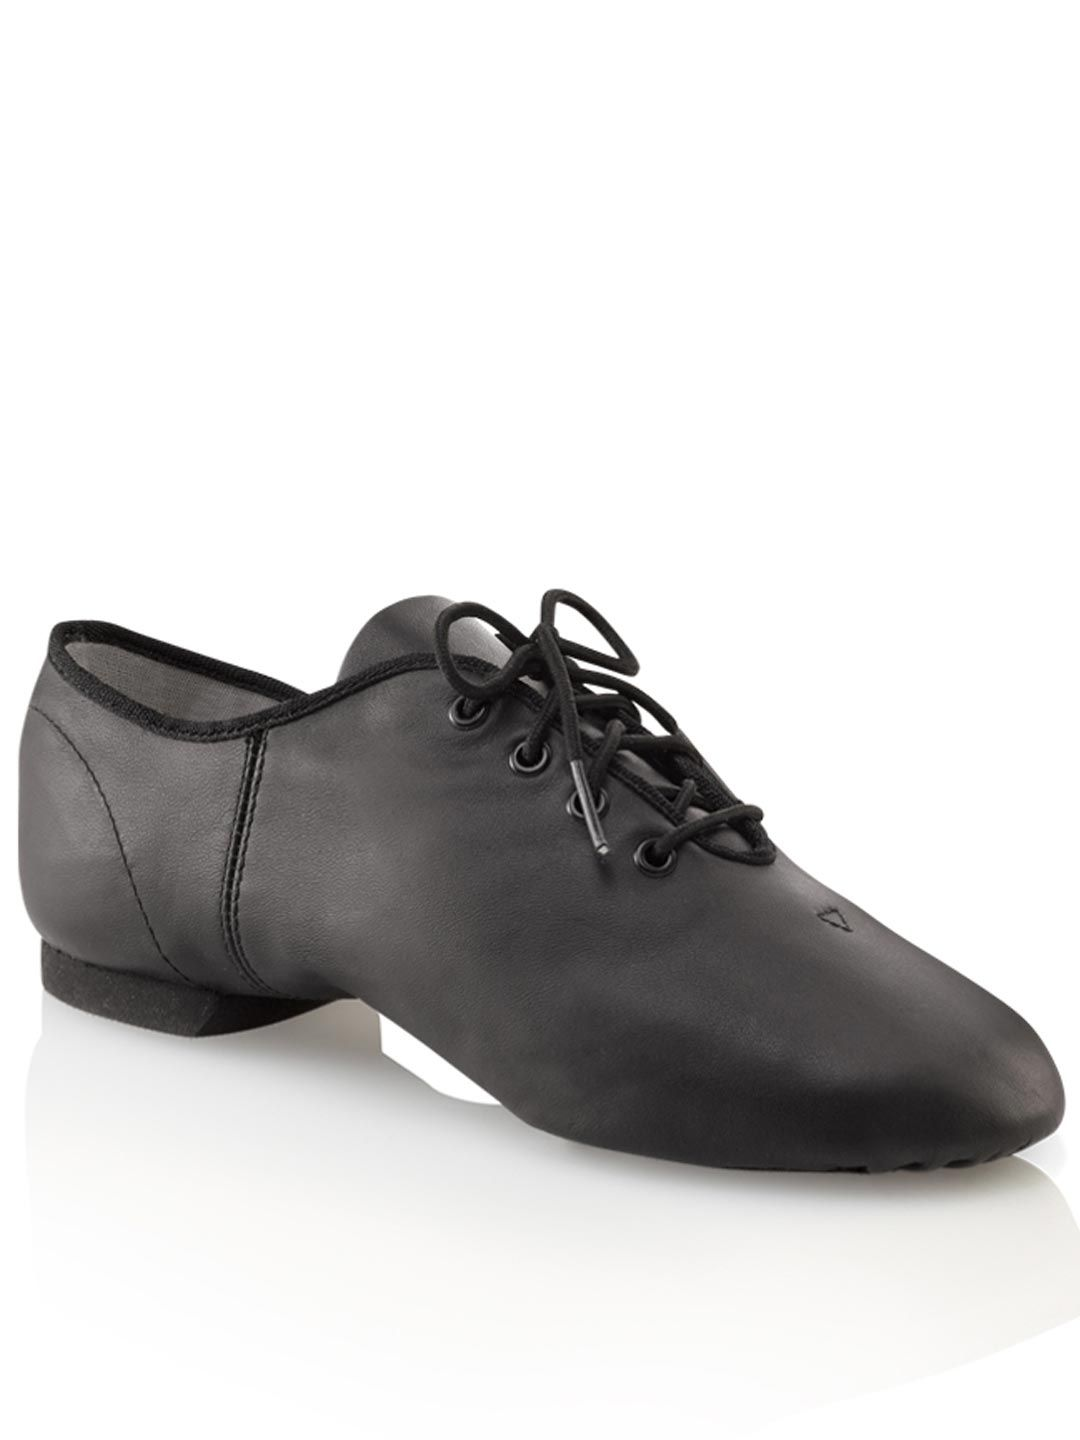 Capezio UCG02 Split Sole Jazz Shoe from Size US4 in Black